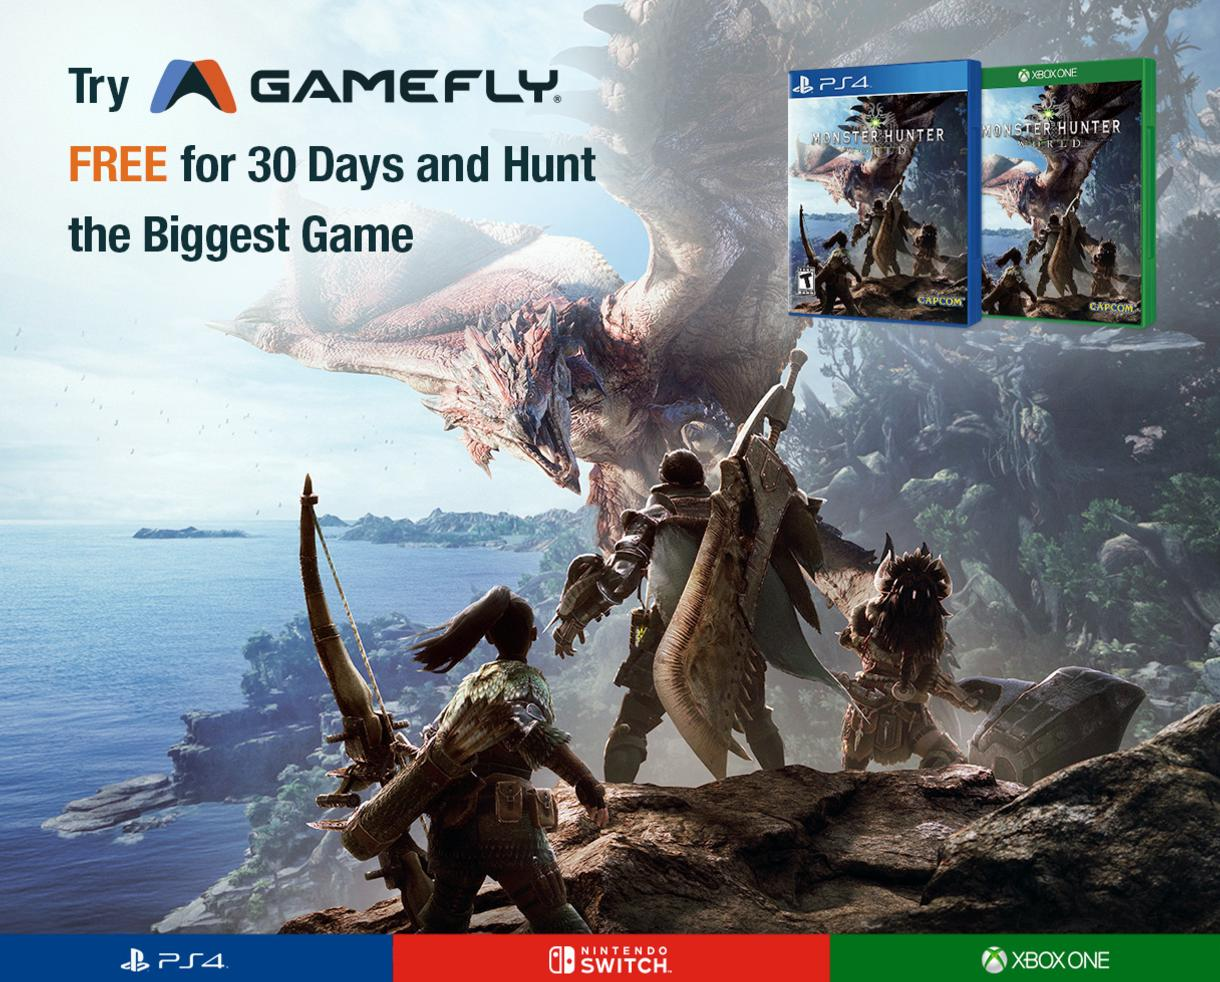 30 Days of FREE Video Game Rentals From GameFly!